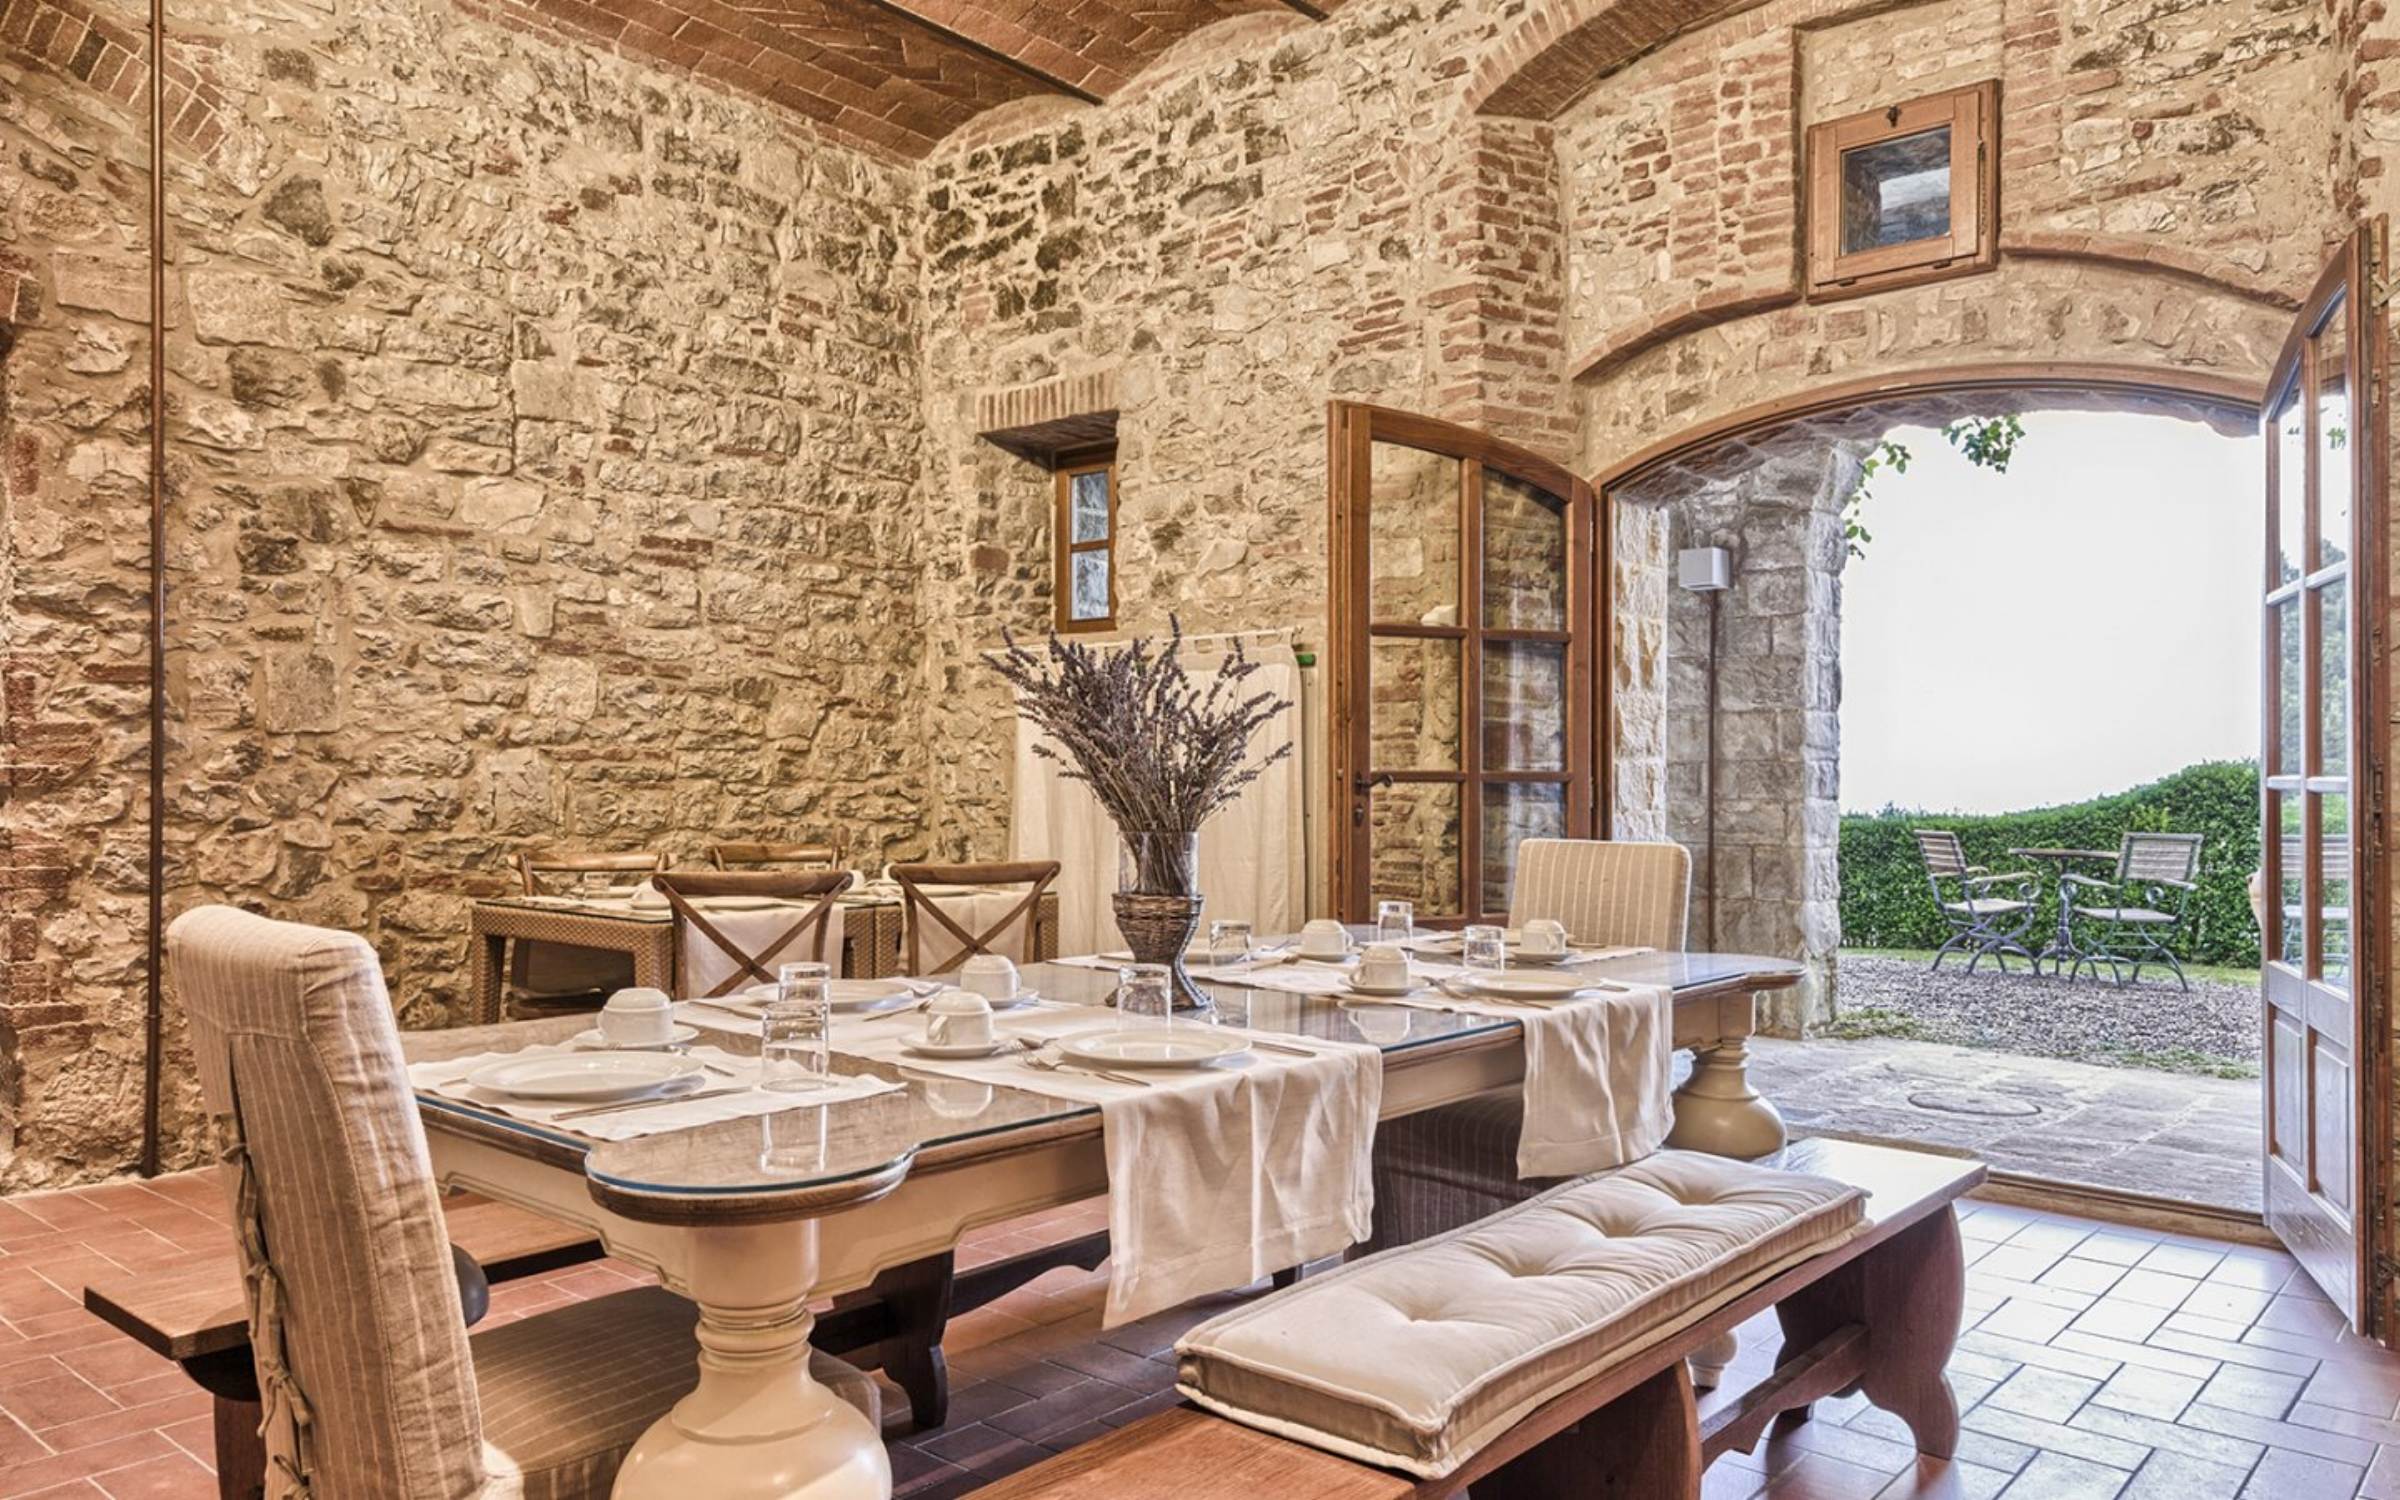 Start the day with breakfast at a charming Italian hotel - your home for the week